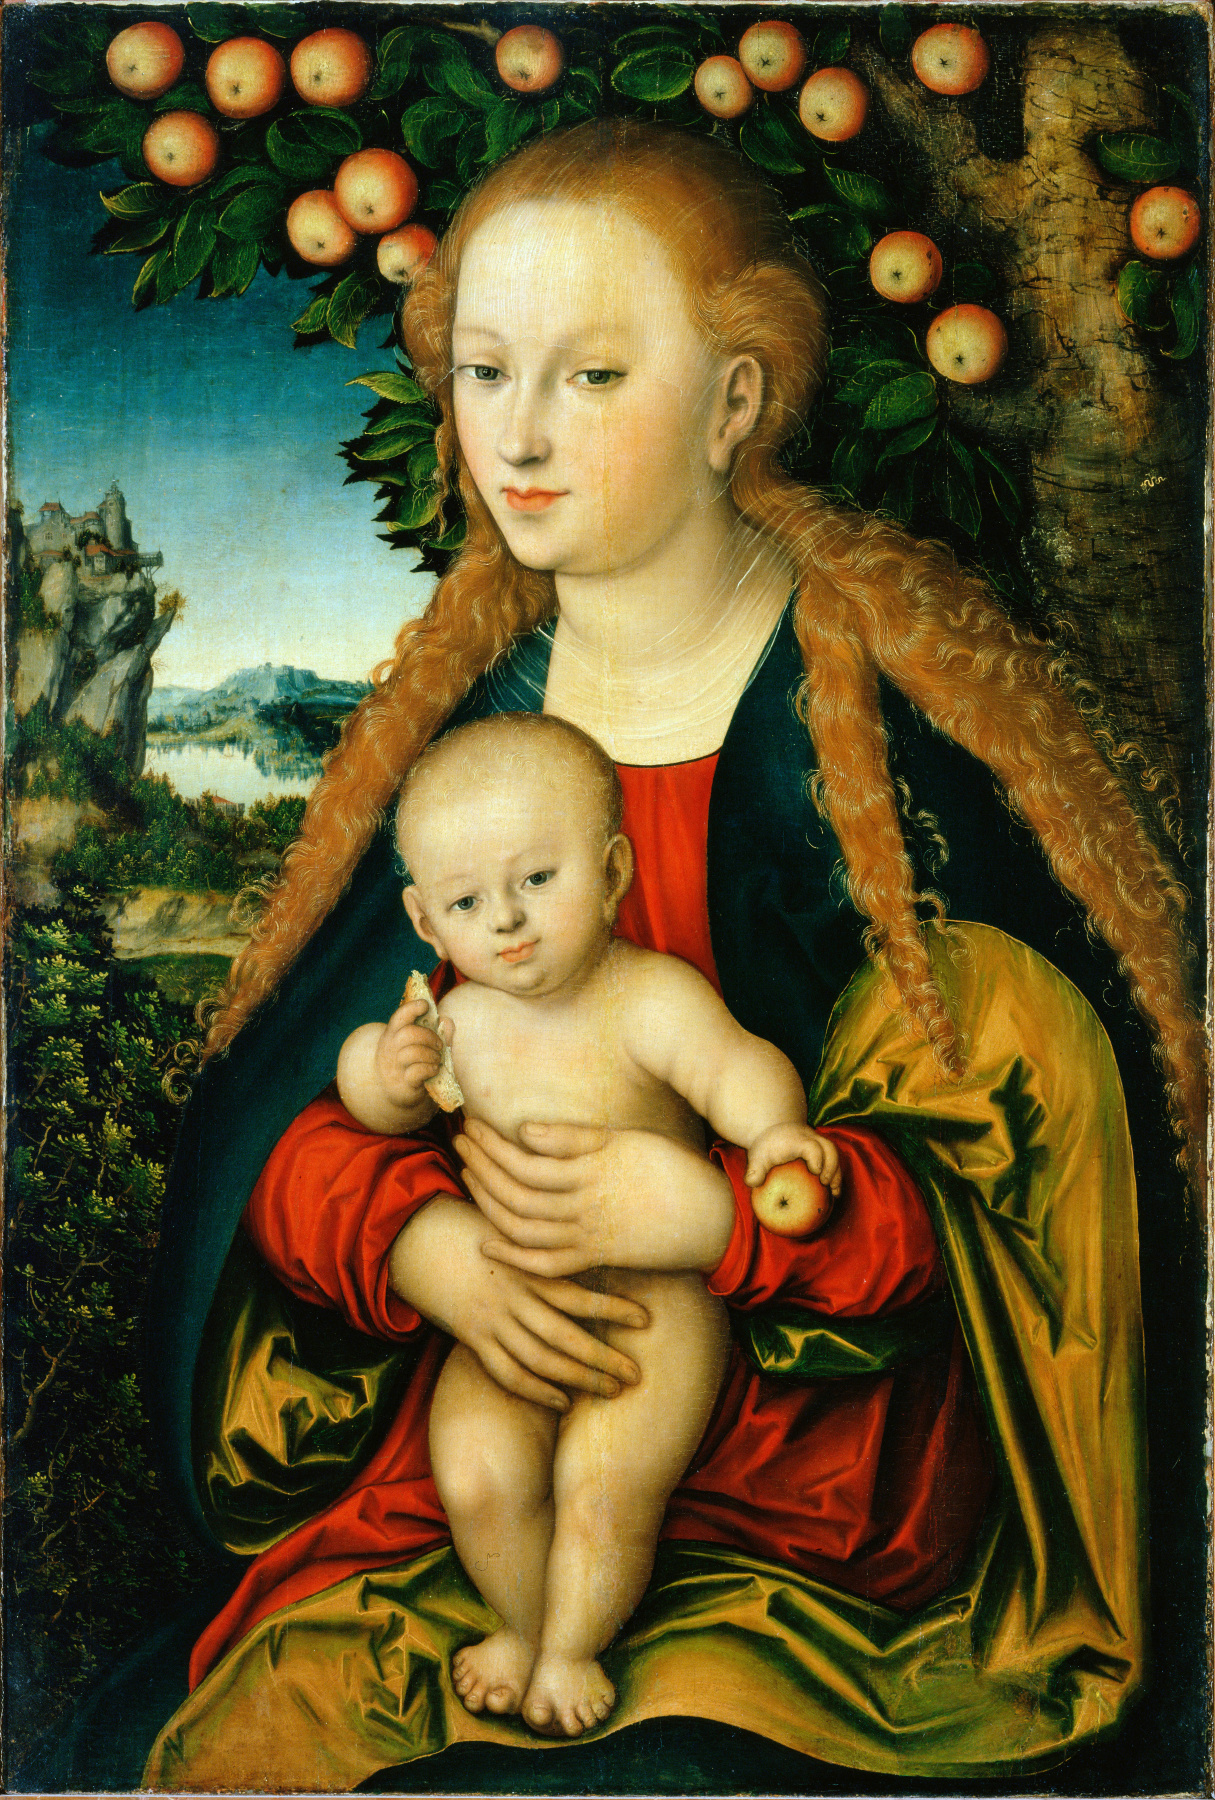 Lucas Cranach the Elder. Madonna and child under an Apple tree